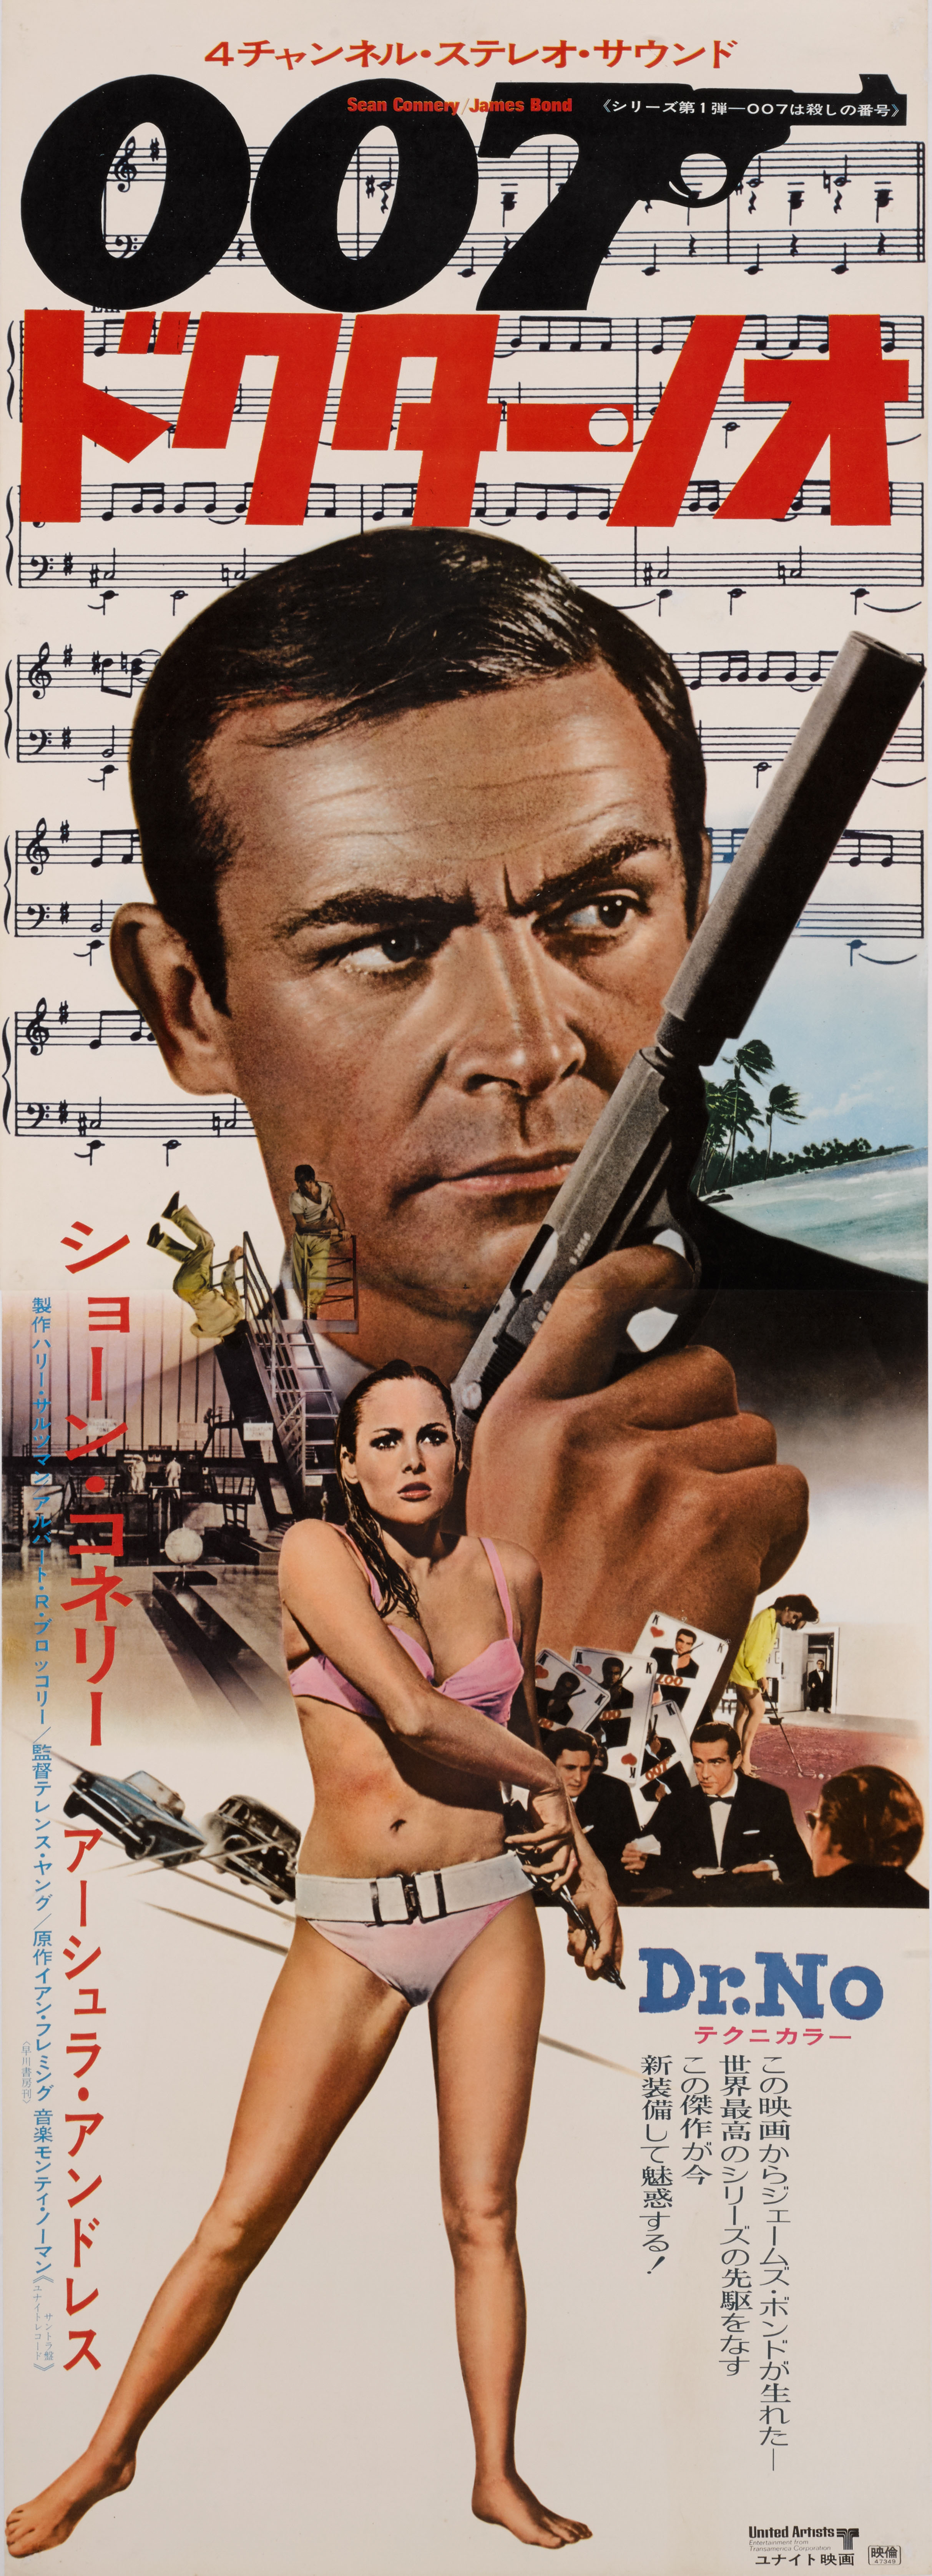 DR. NO (1962) POSTER, JAPANESE, RE-RELEASE 1972